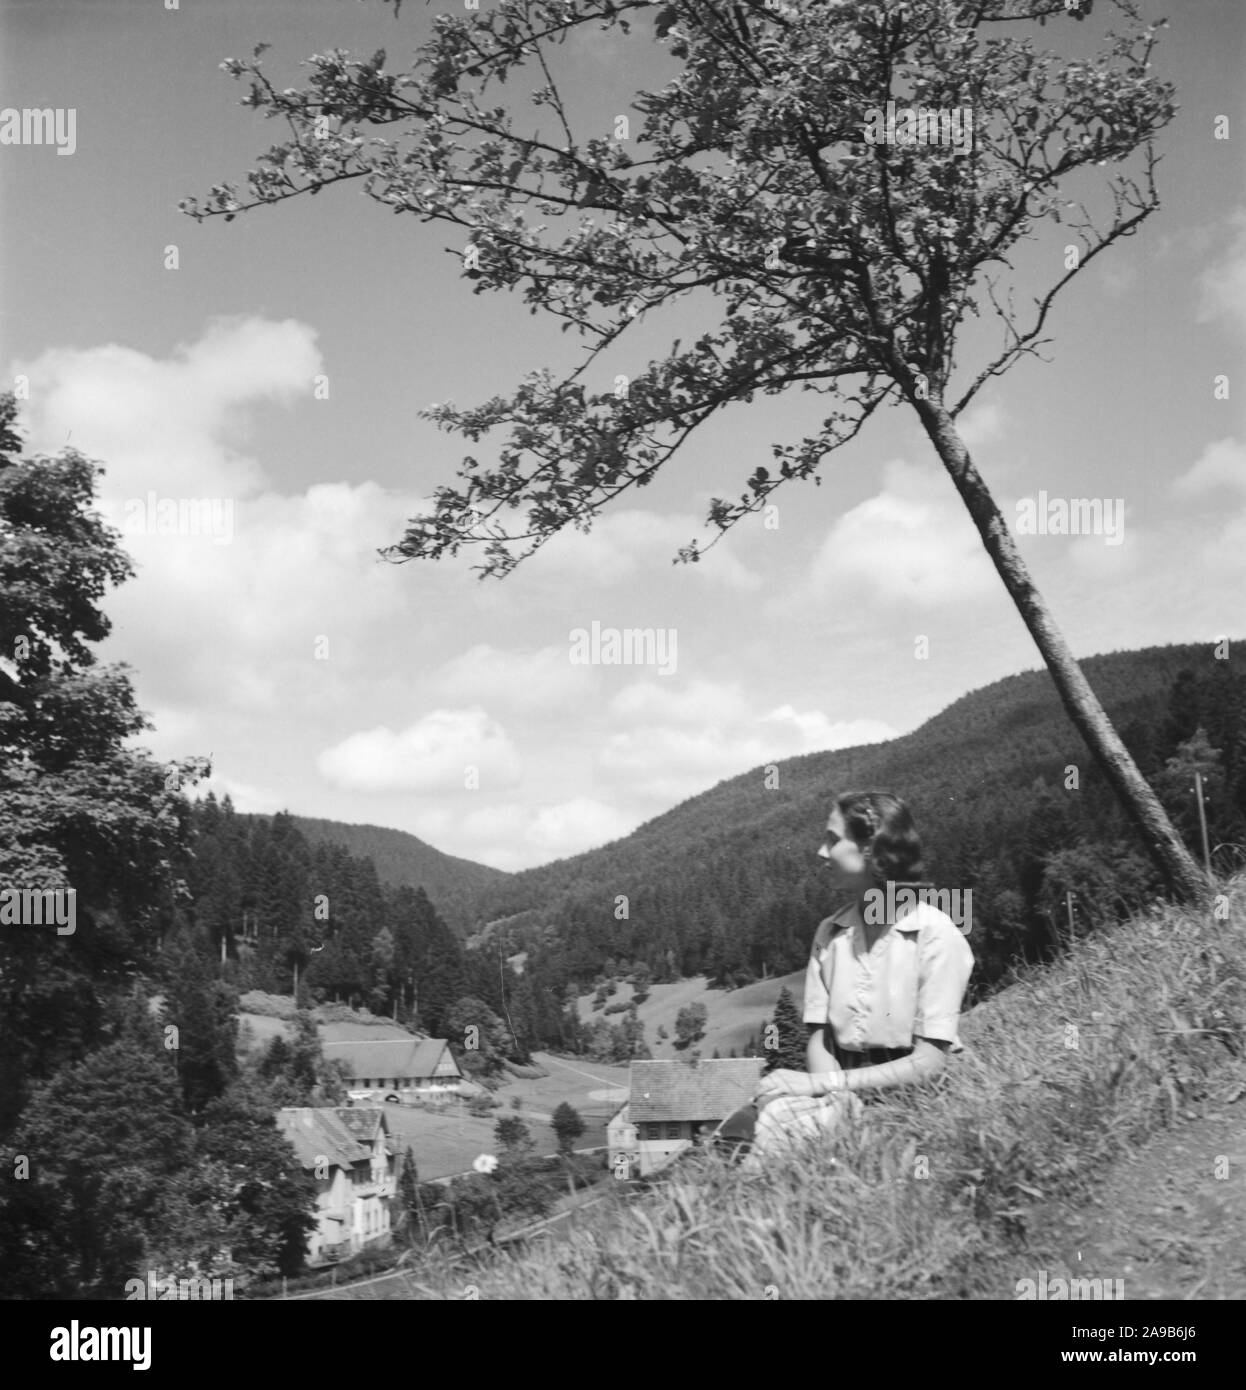 Summer in the Black Forrest, Germany 1930s. Stock Photo